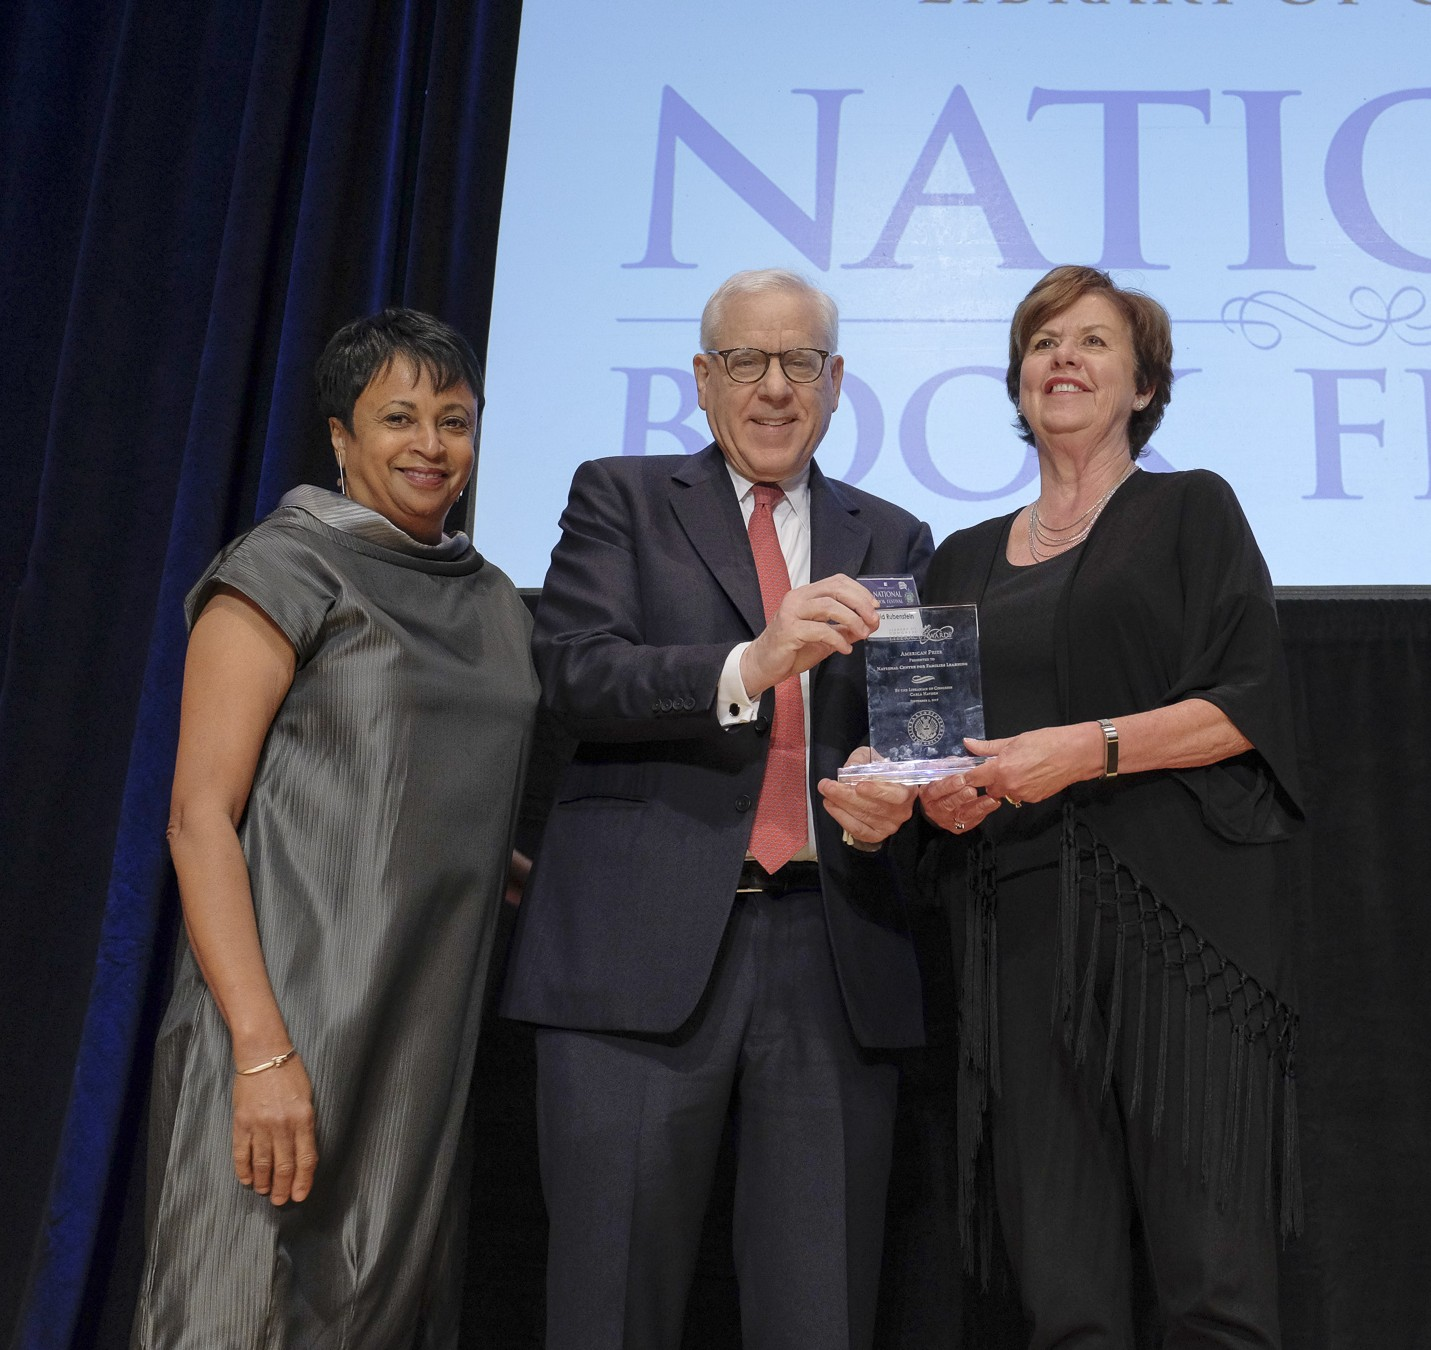 Librarian of Congress Carla Hayden and Literacy Awards benefactor David Rubenstein award the 2017 American Prize to the National Center for Families Learning from Louisville, Kentucky, during the National Book Festival Gala, September 1, 2017. Photo by Shawn Miller.